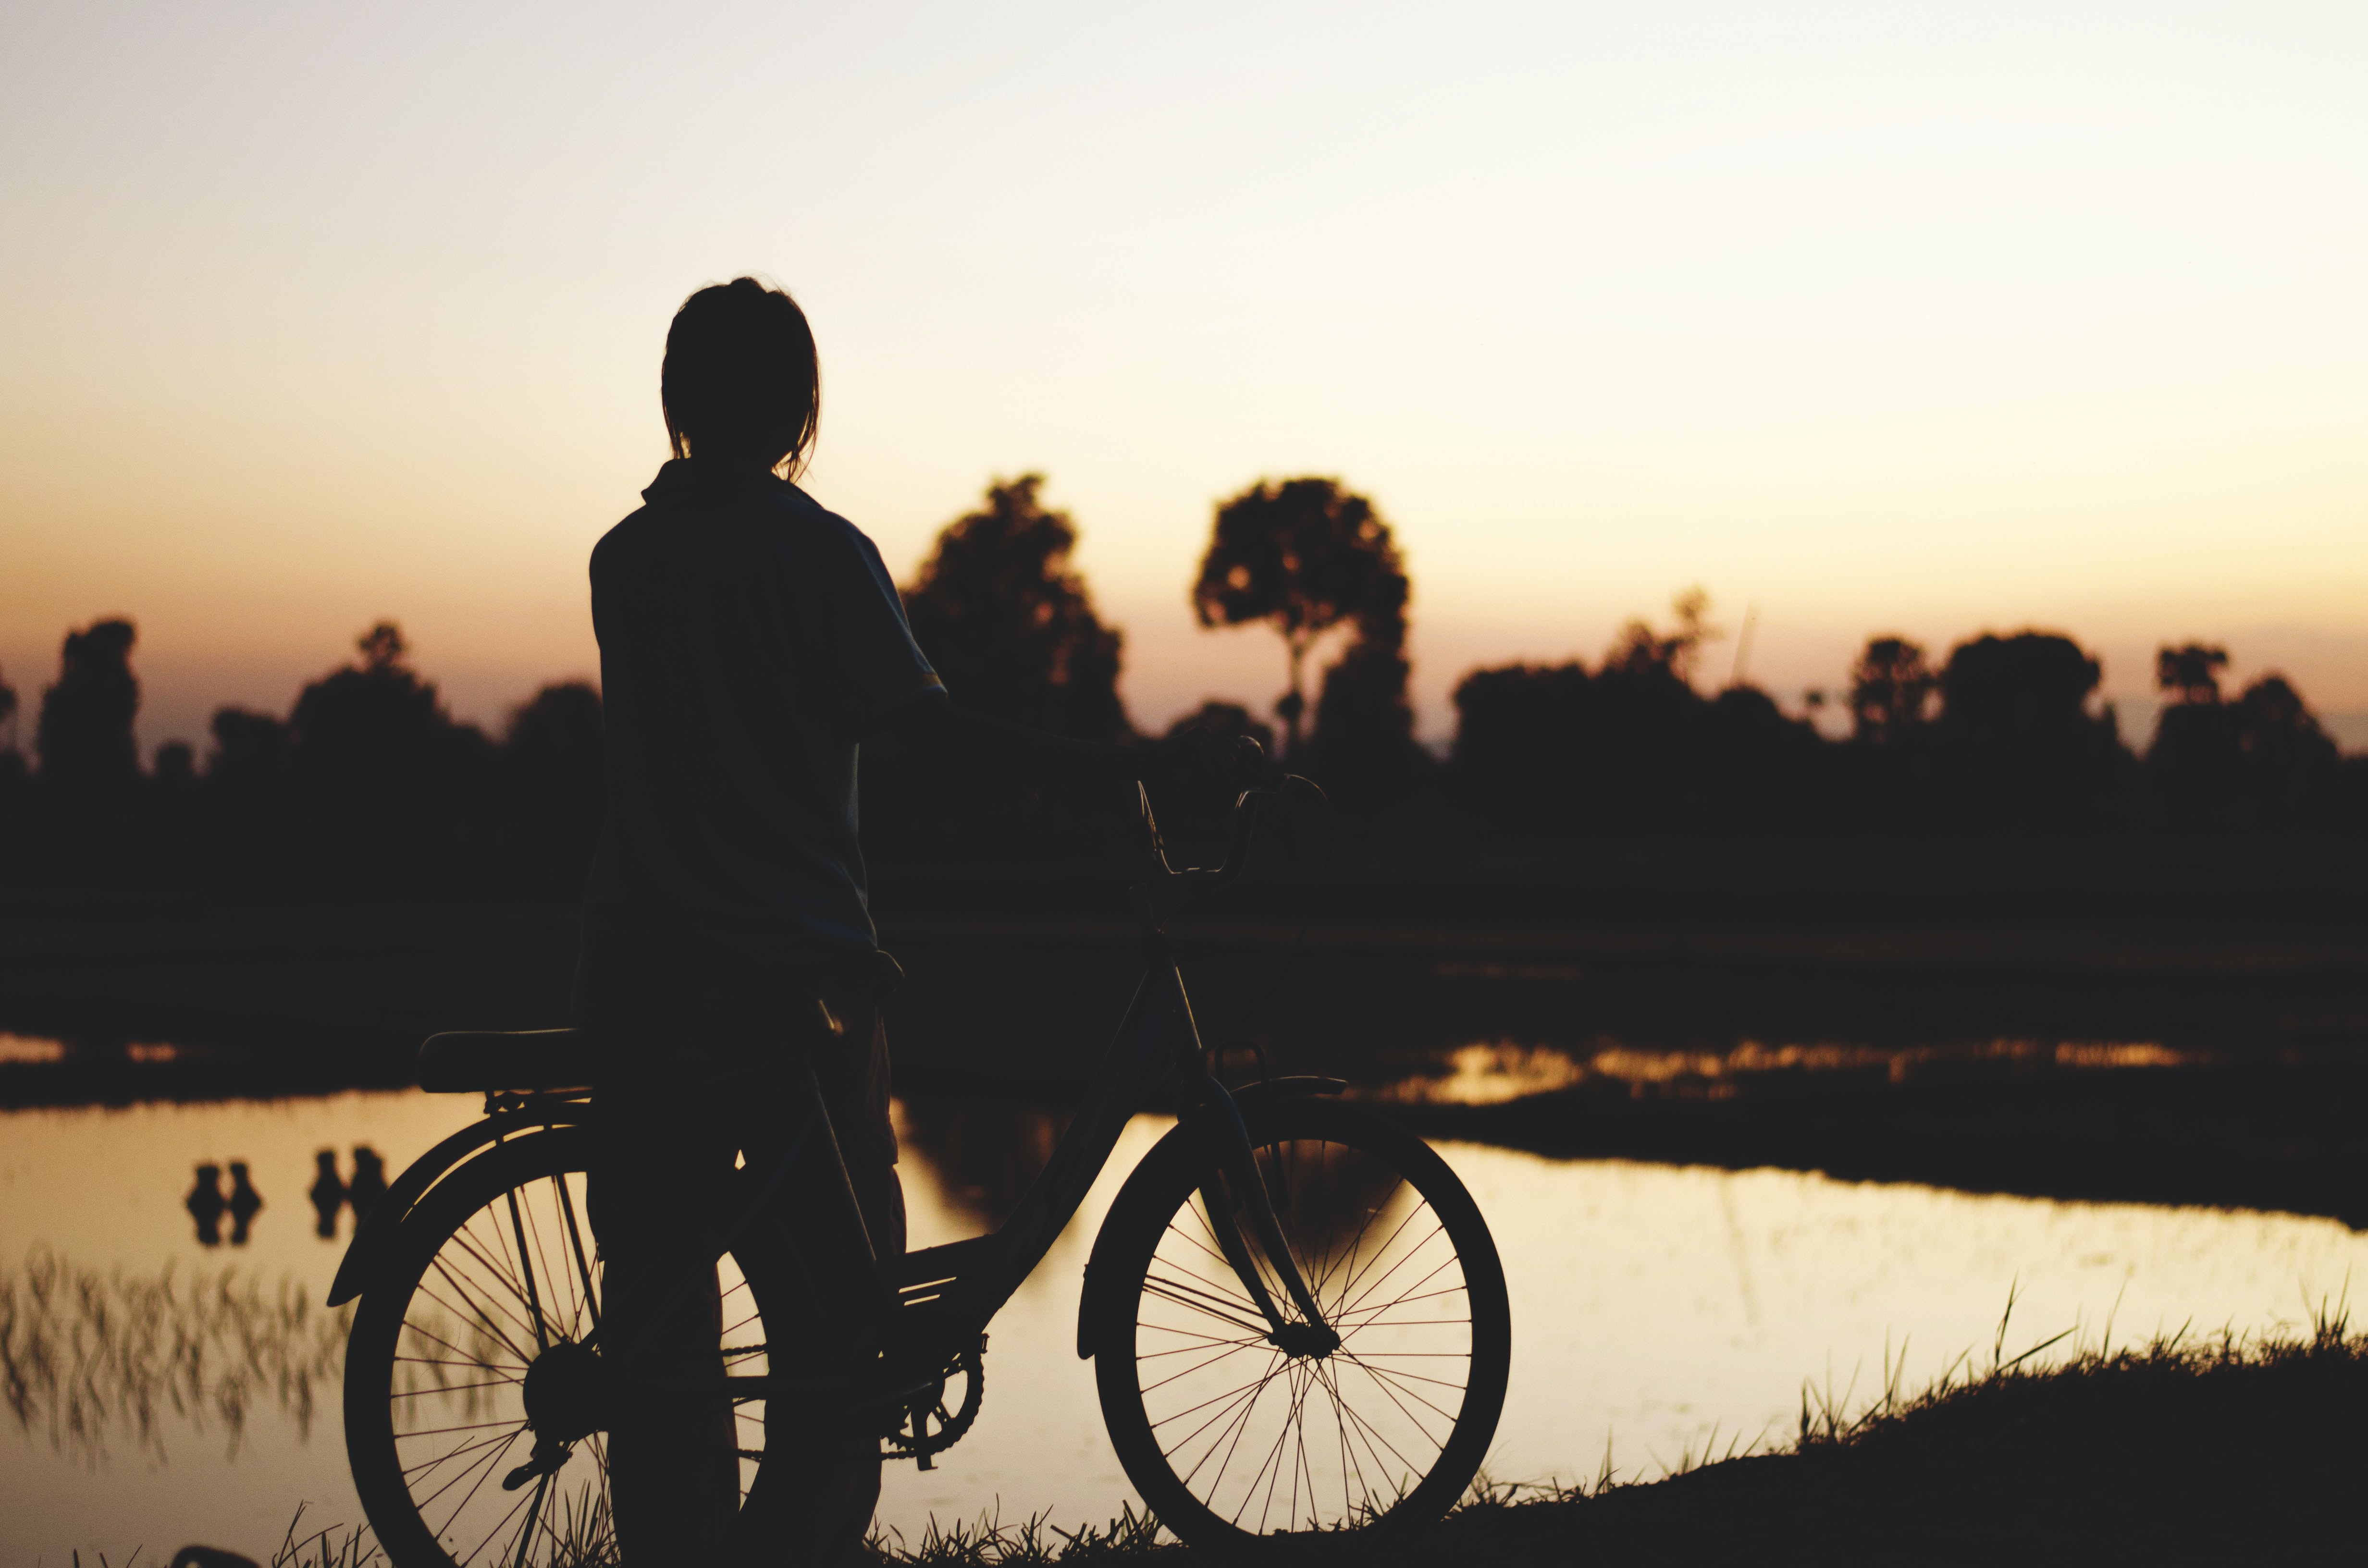 A person in silhouette stands next to a bicycle by a lake at sunset